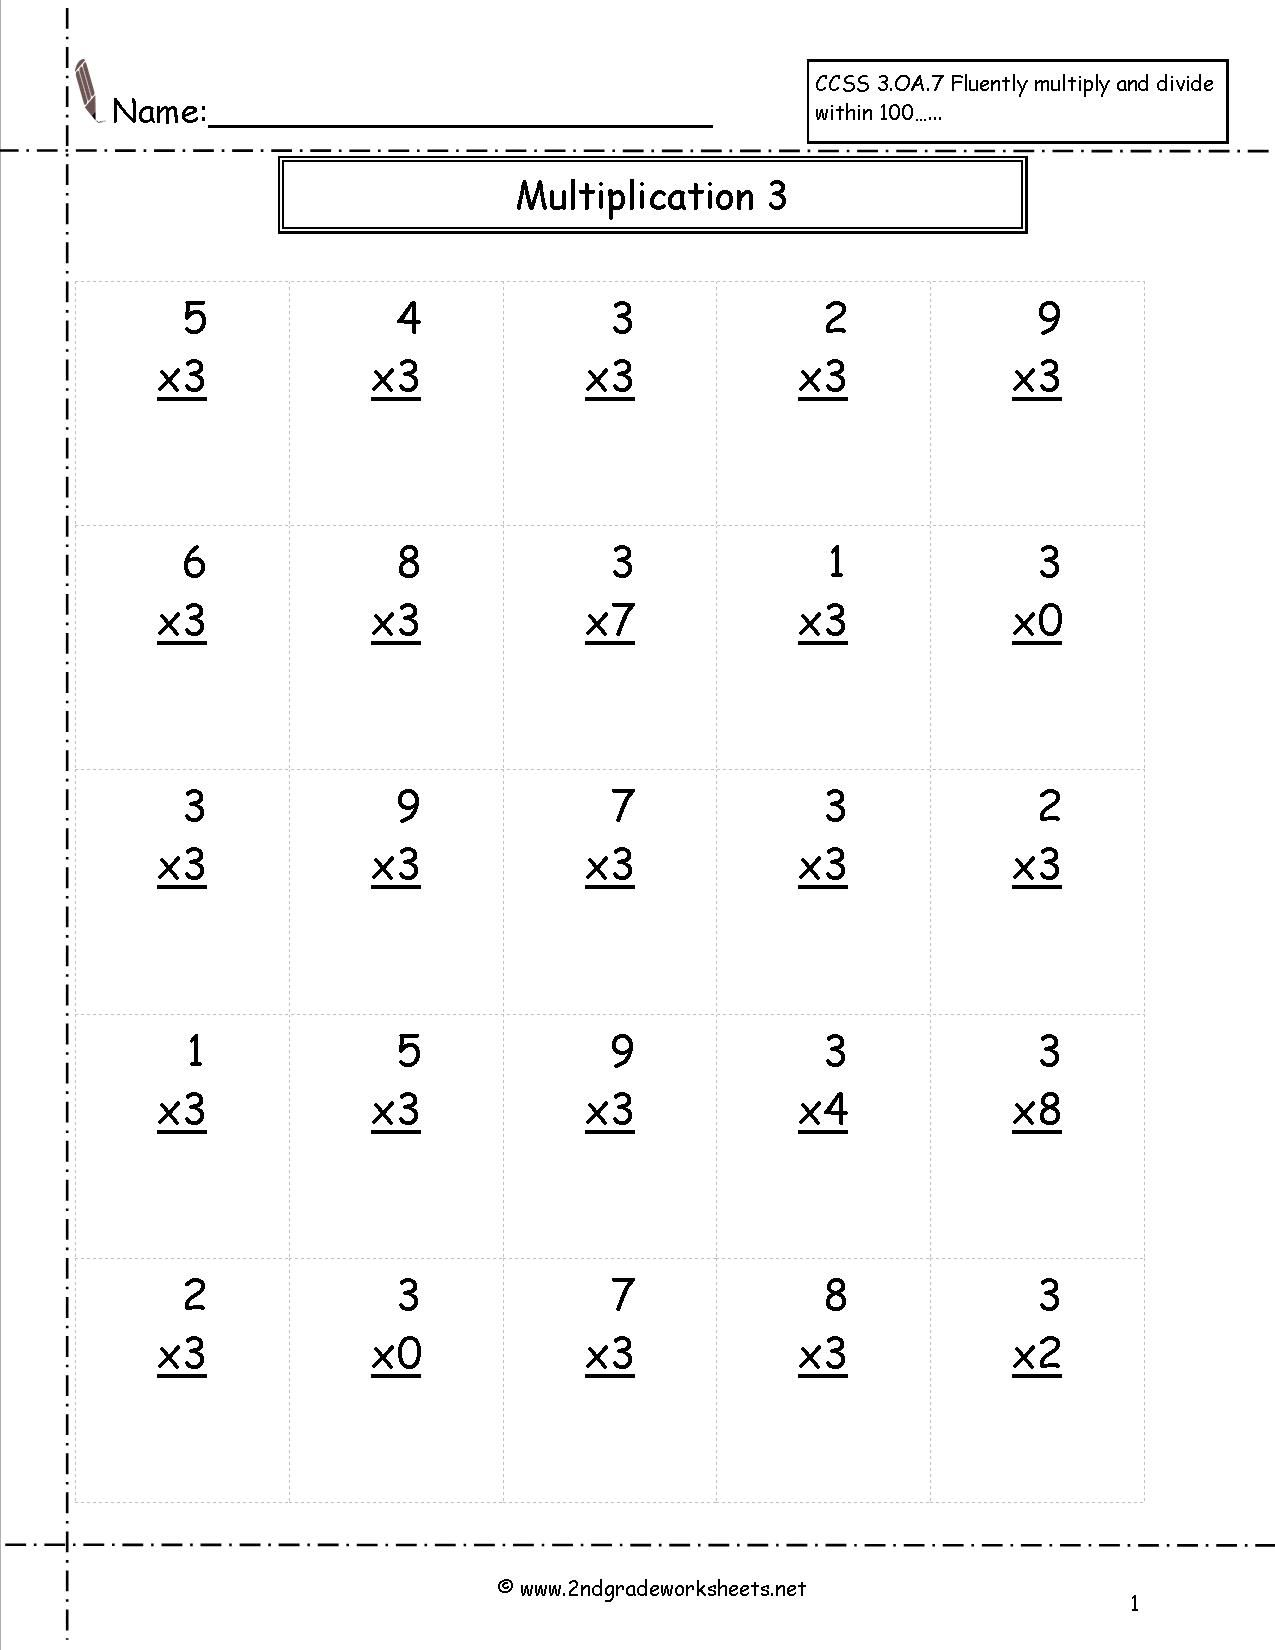 Multiplication Practice Sheets For 3rd Grade